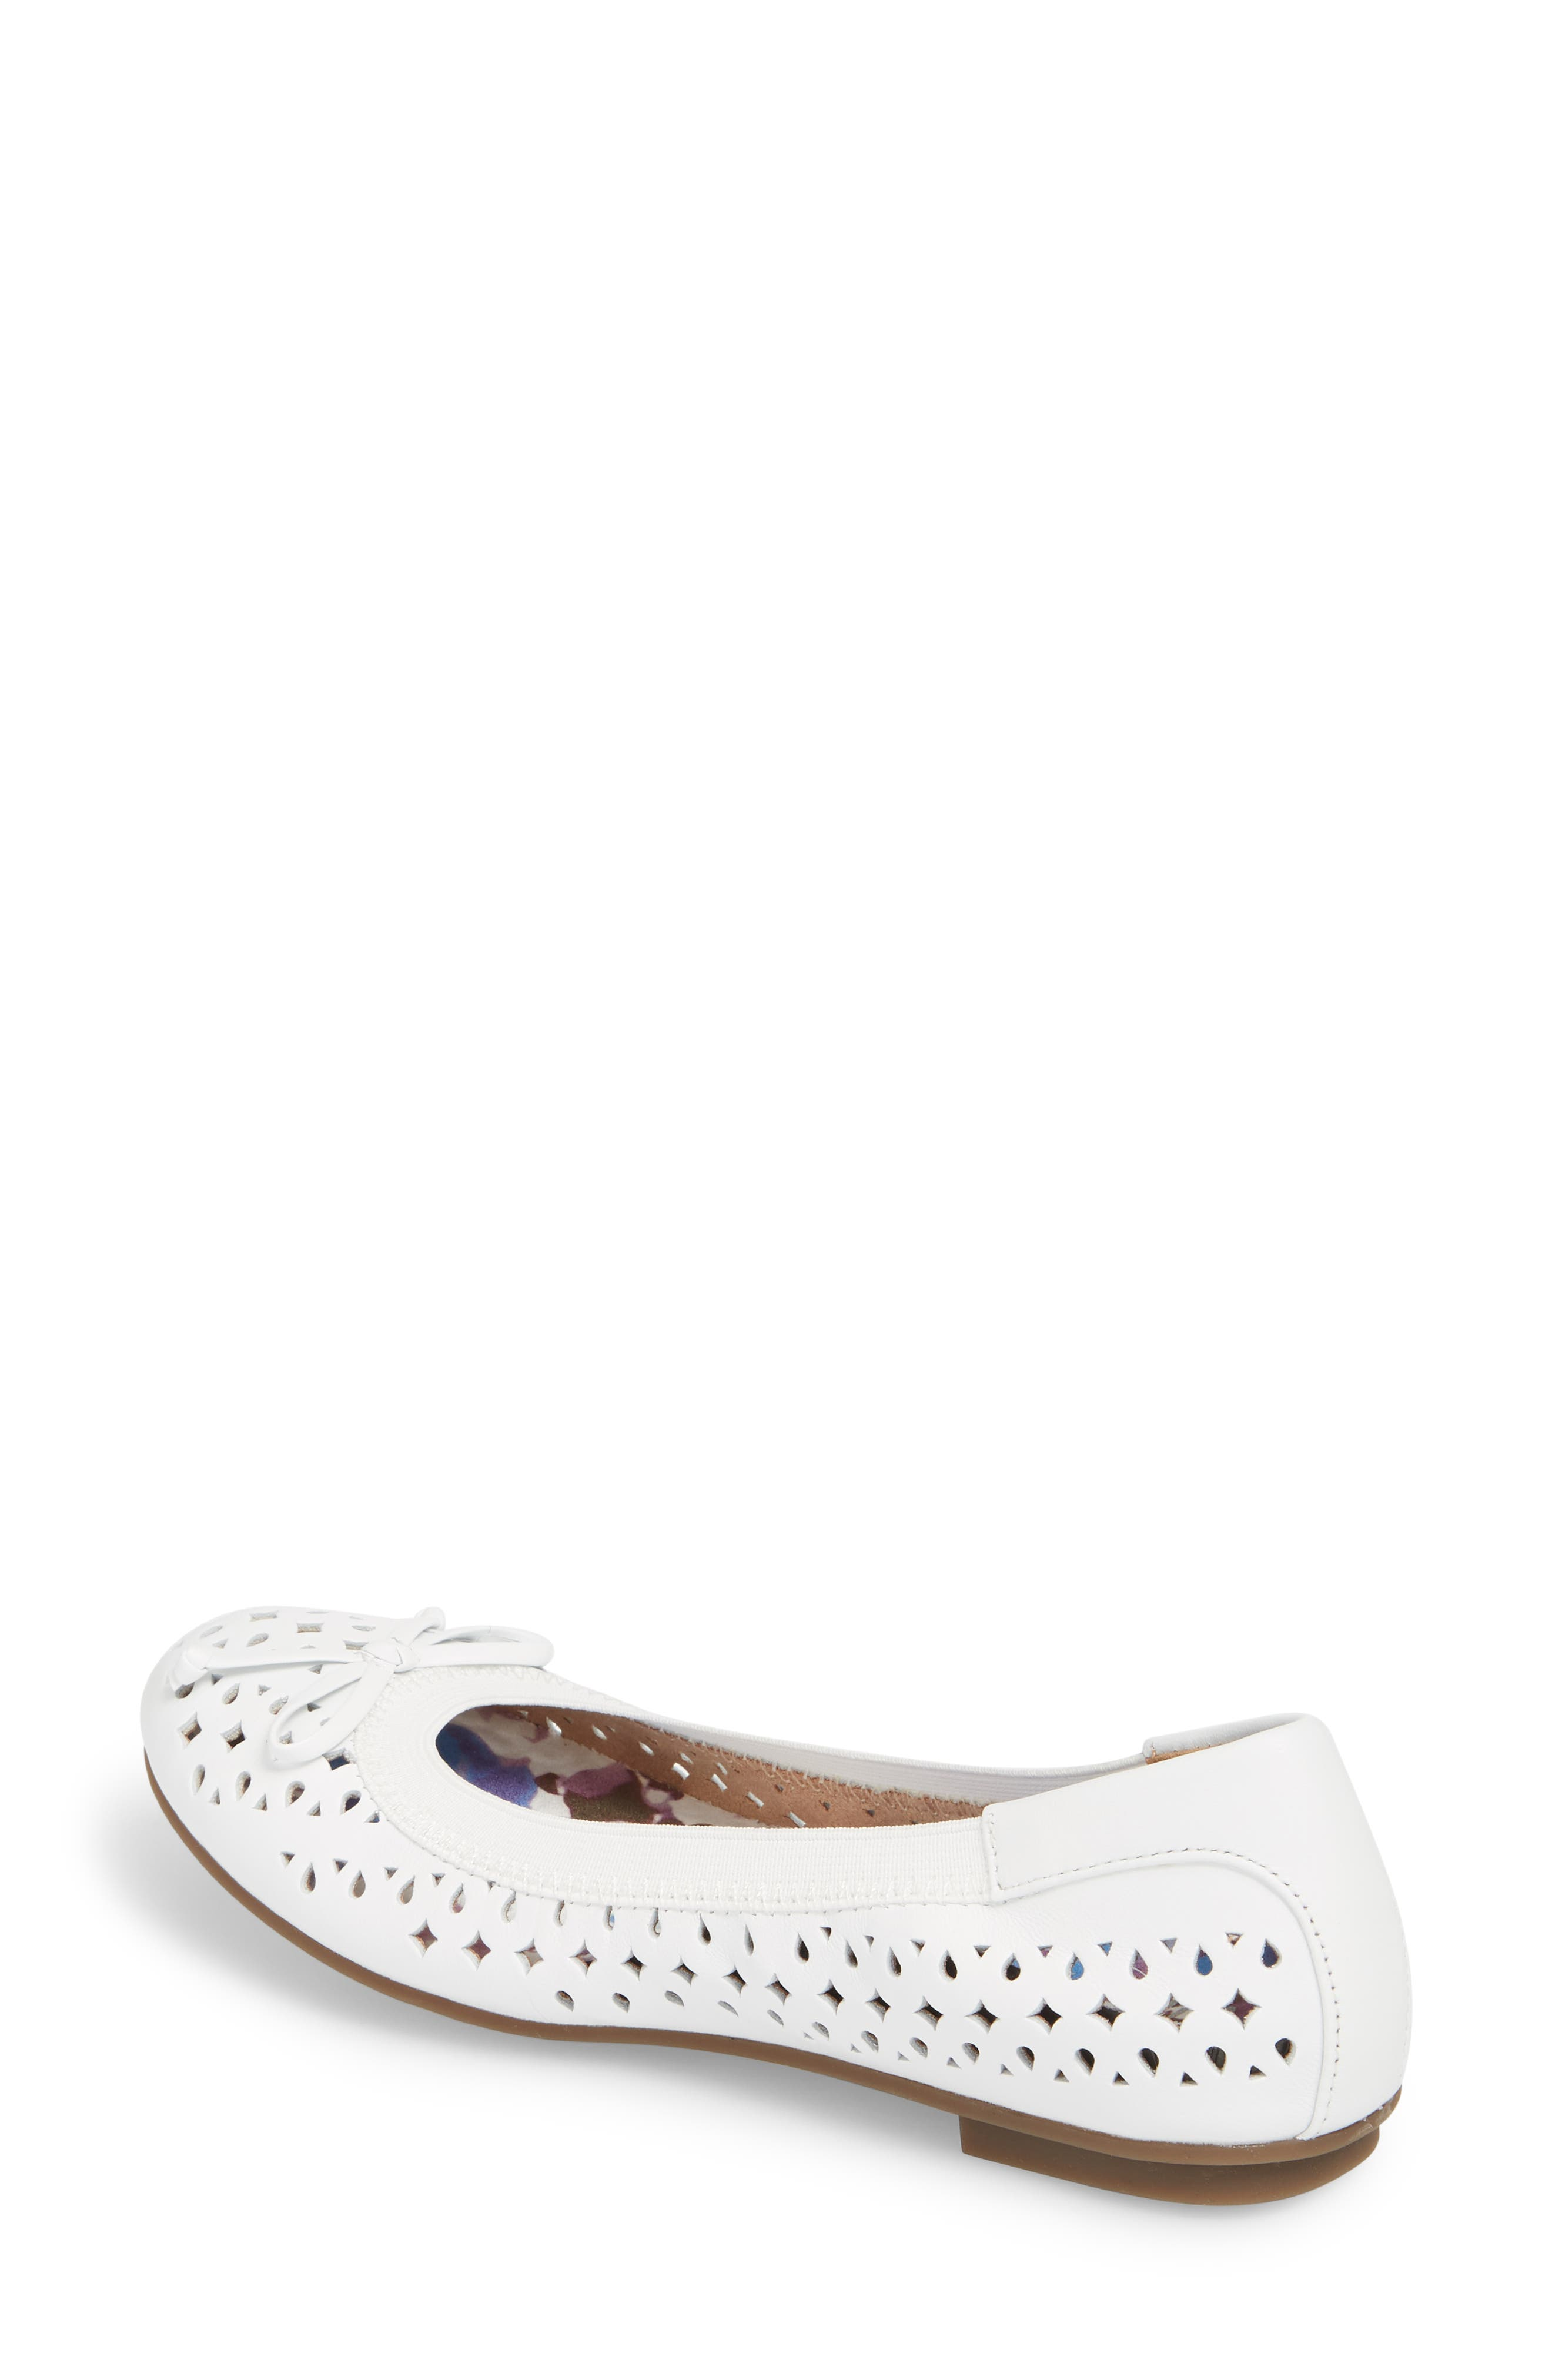 'Surin' Perforated Ballet Flat,                             Alternate thumbnail 2, color,                             100